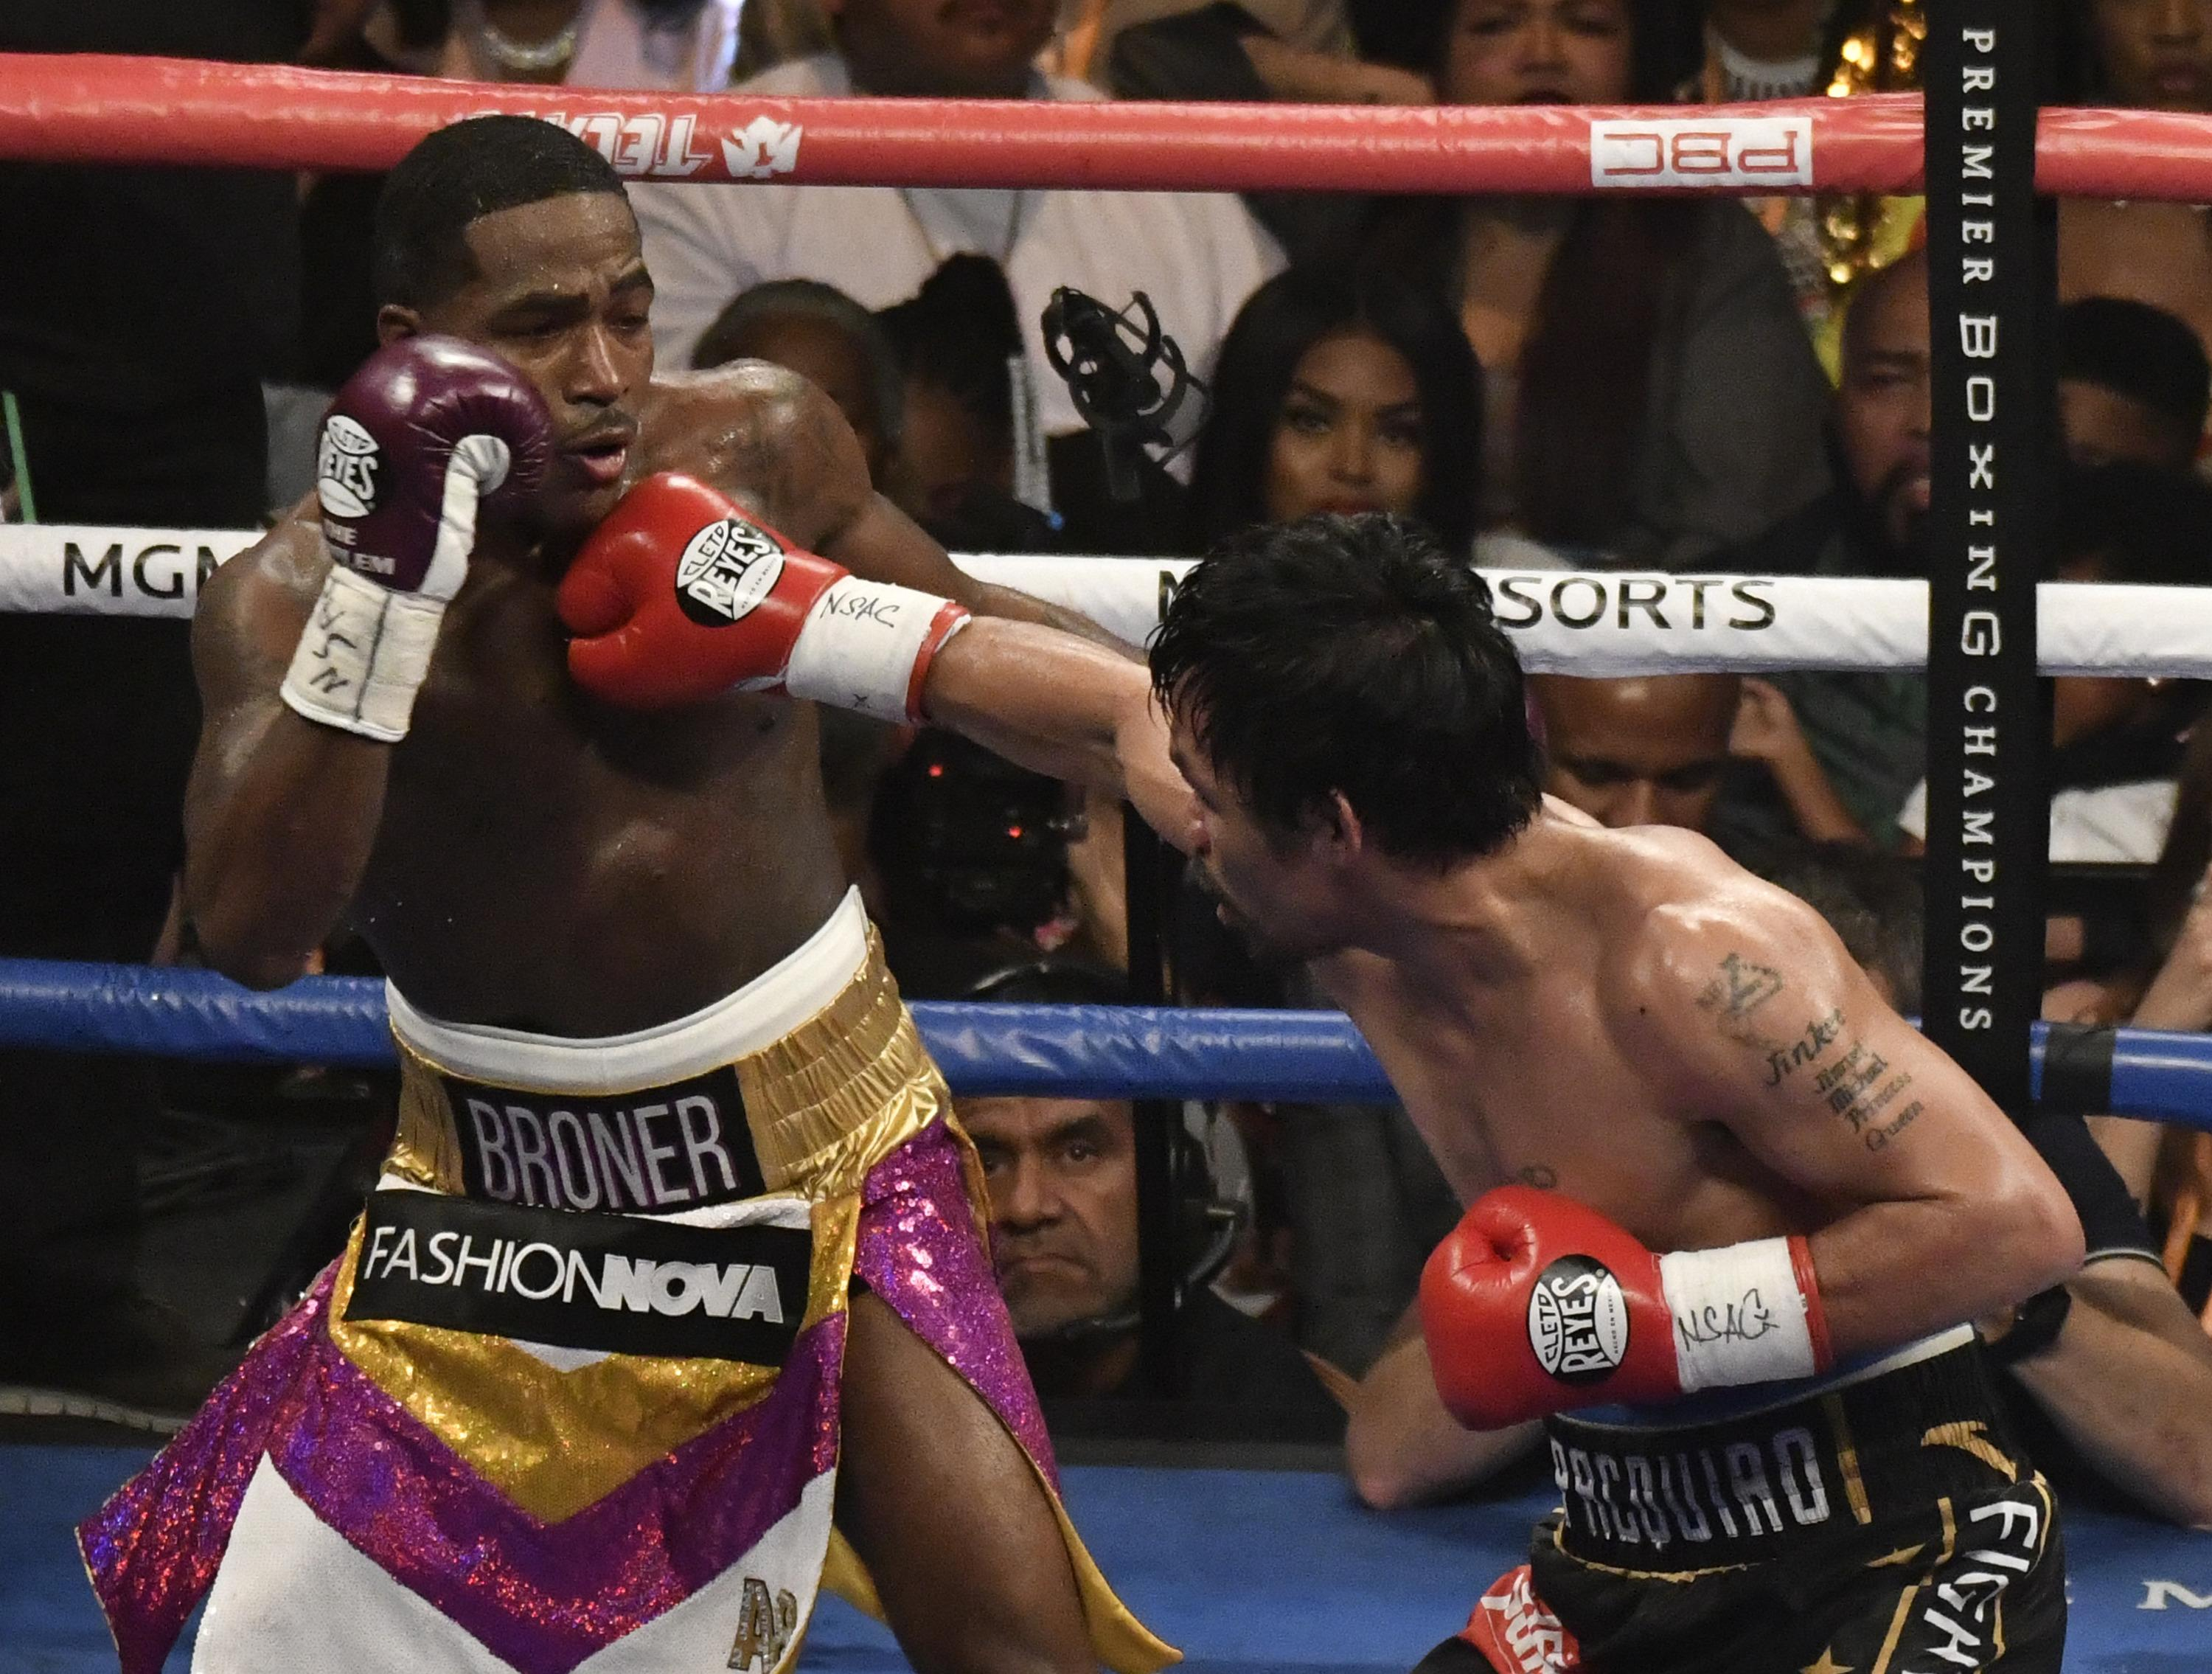 Adrien Broner was defeated by Manny Pacquiao on Saturday night